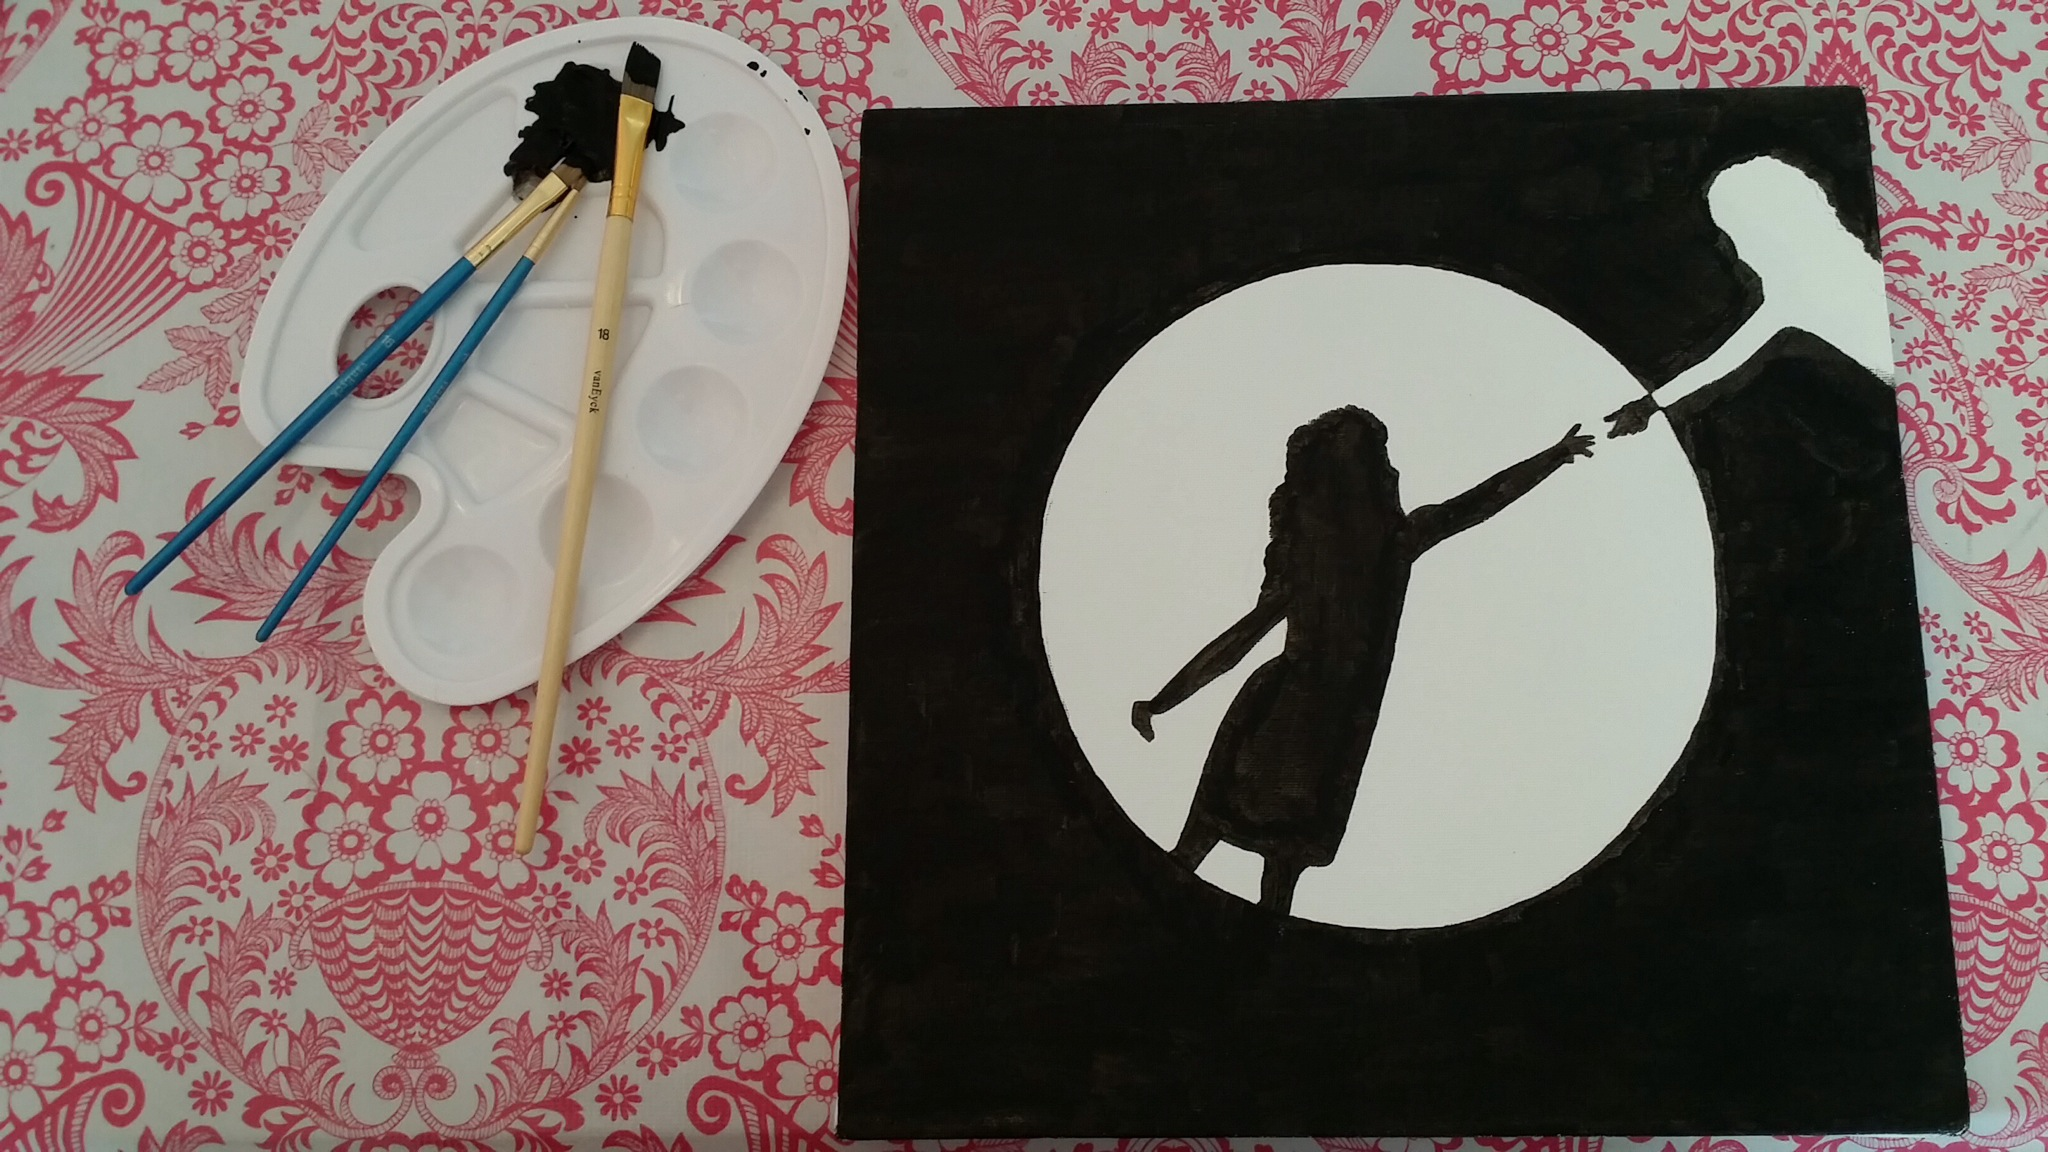 Tanya's 101 - Paint on a Canvas | How I found the courage to paint on a canvas (er... six canvasses) for the first time